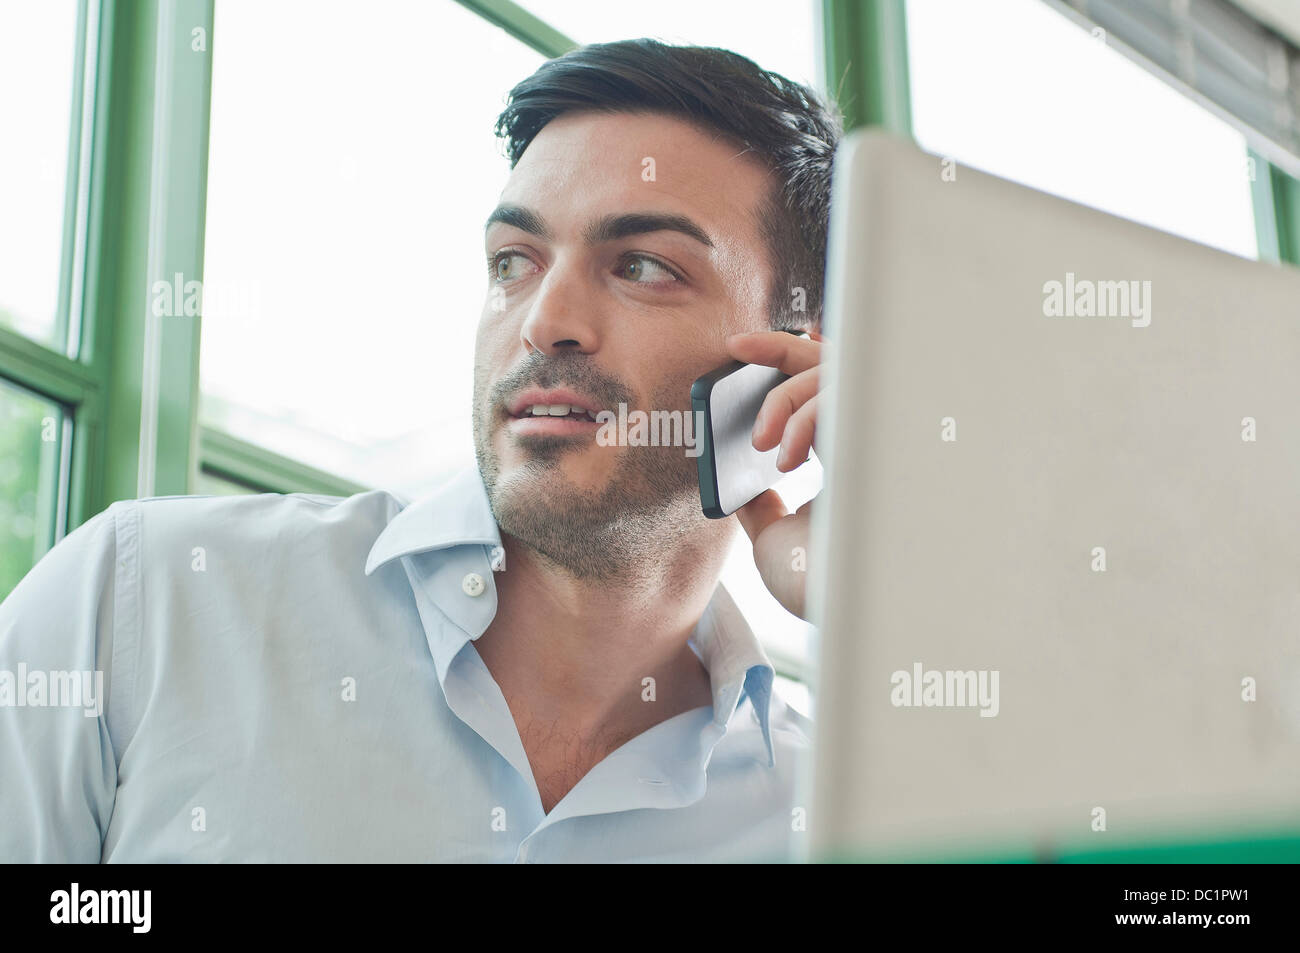 Close up of young male office worker talking on mobile phone Photo Stock